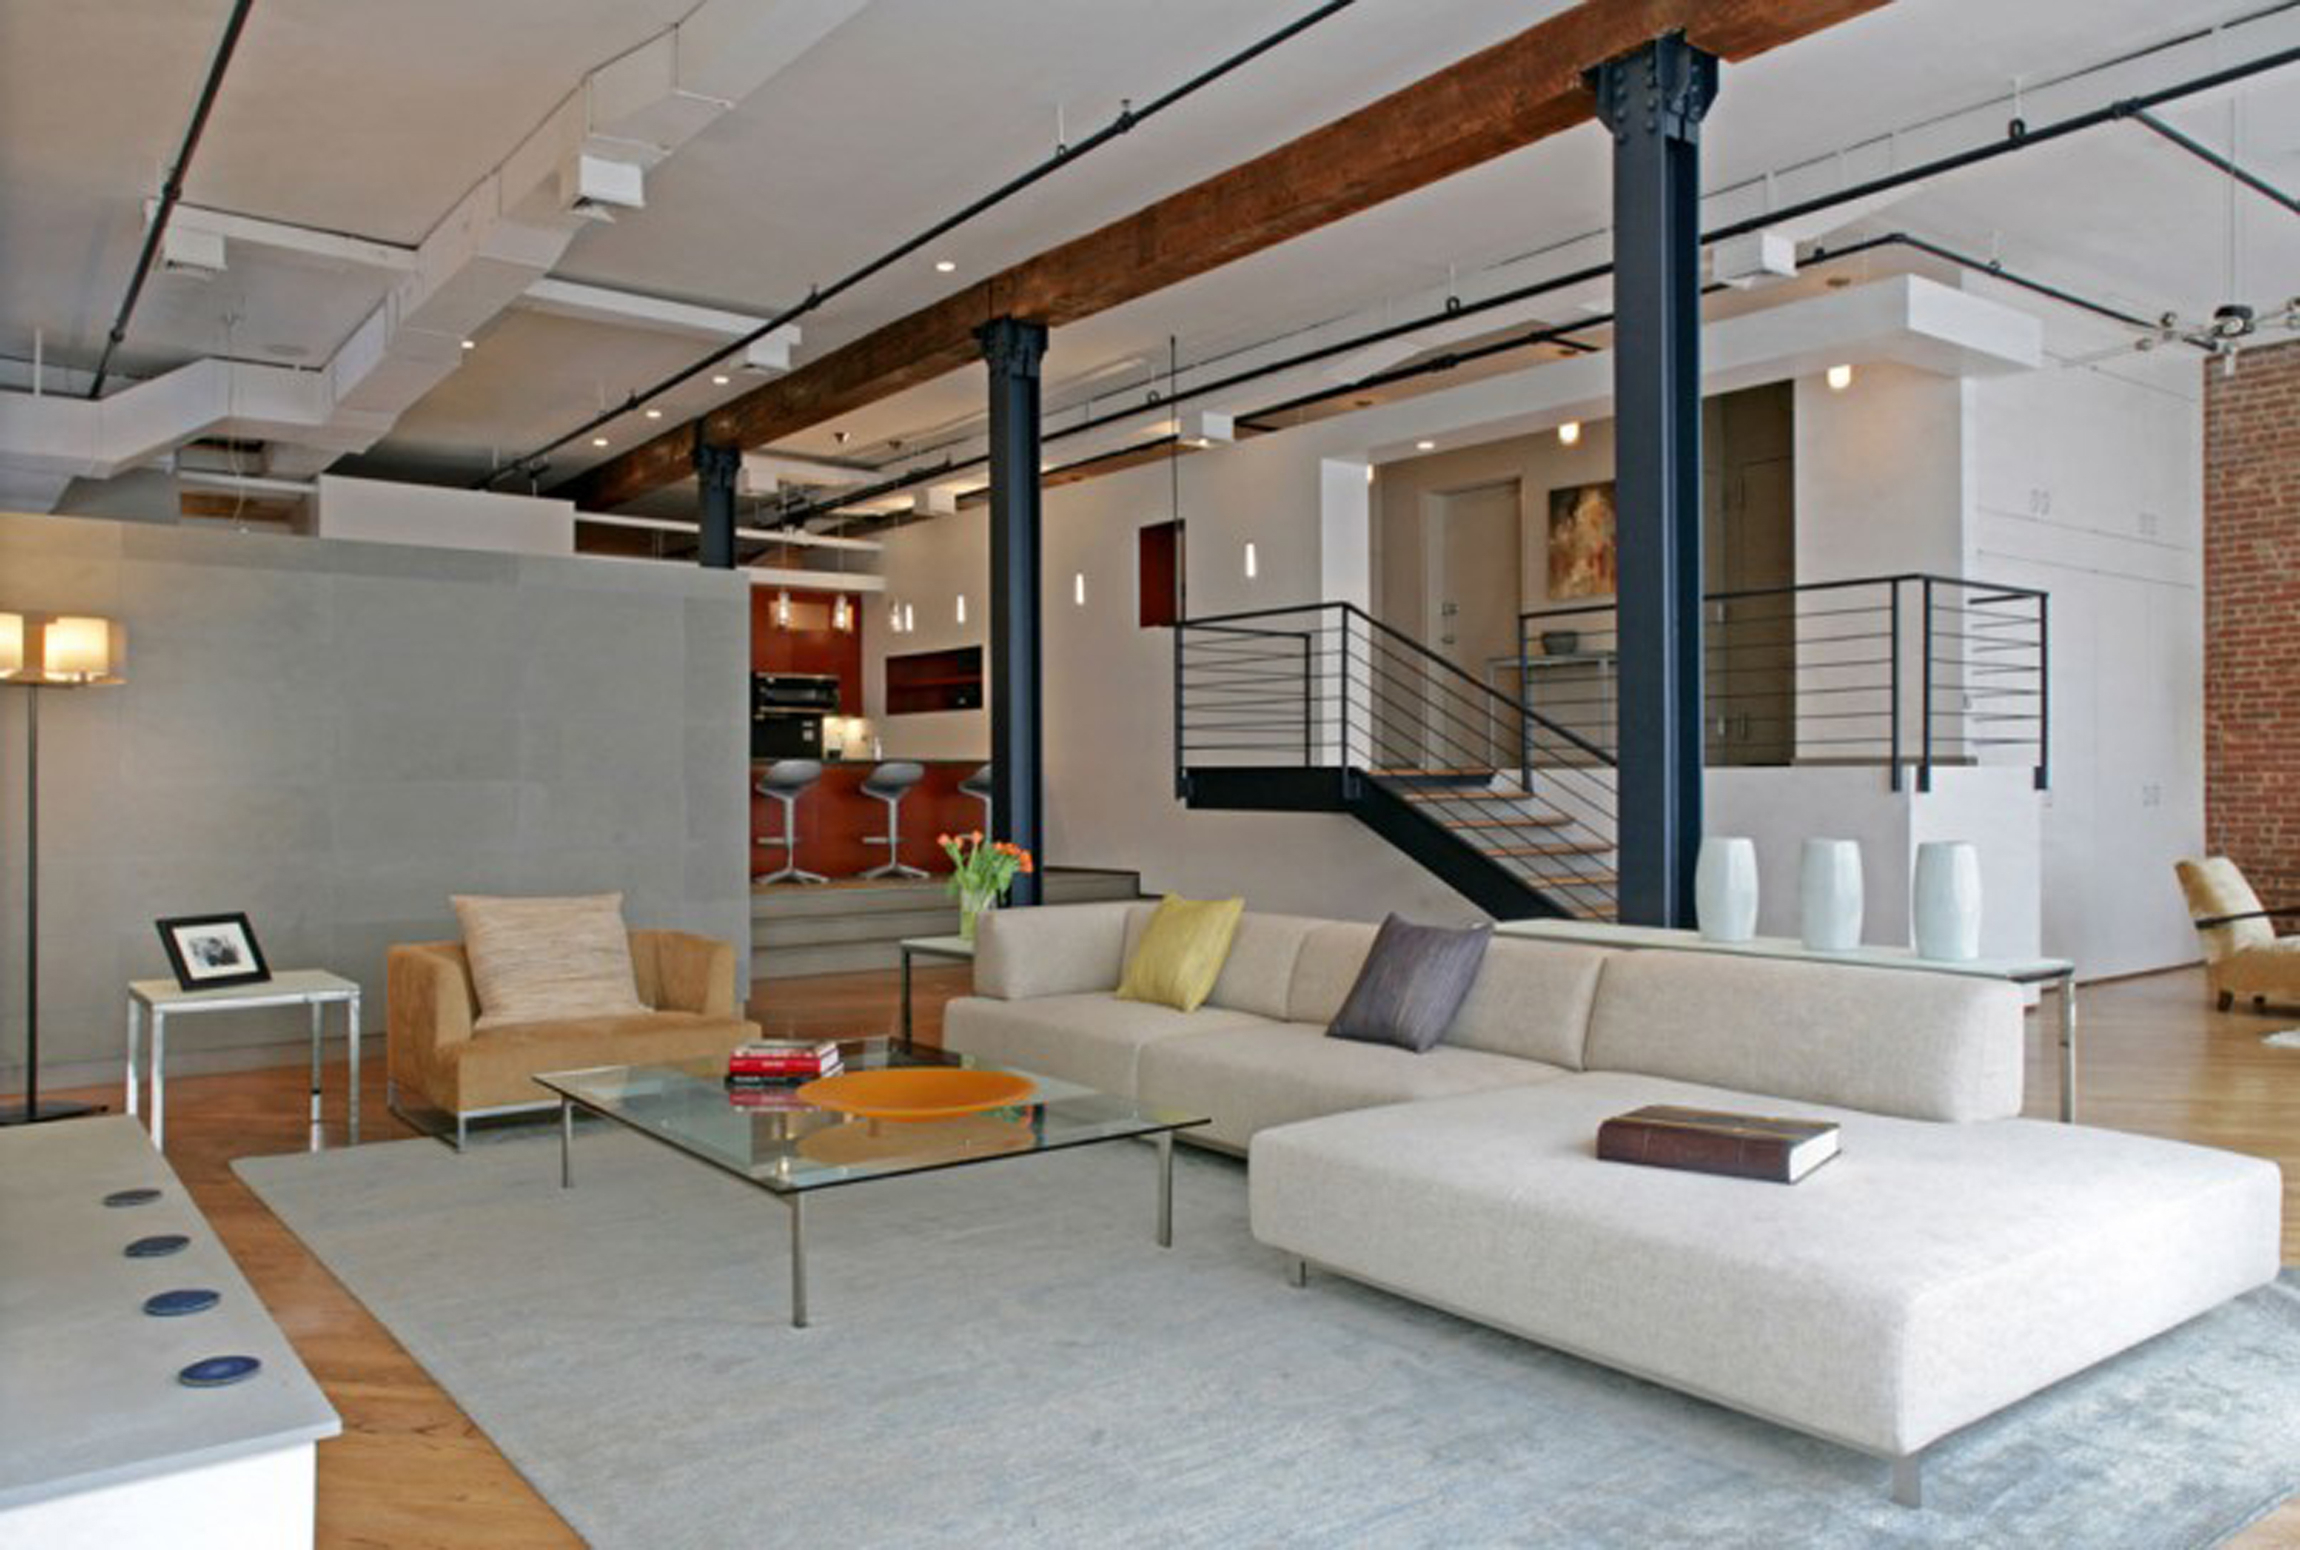 Luxurious Apartments Decoration With High Ceiling And White Sofa Also With Wooden Step Staircase Modern Apartments In New York City (Image 2 of 123)